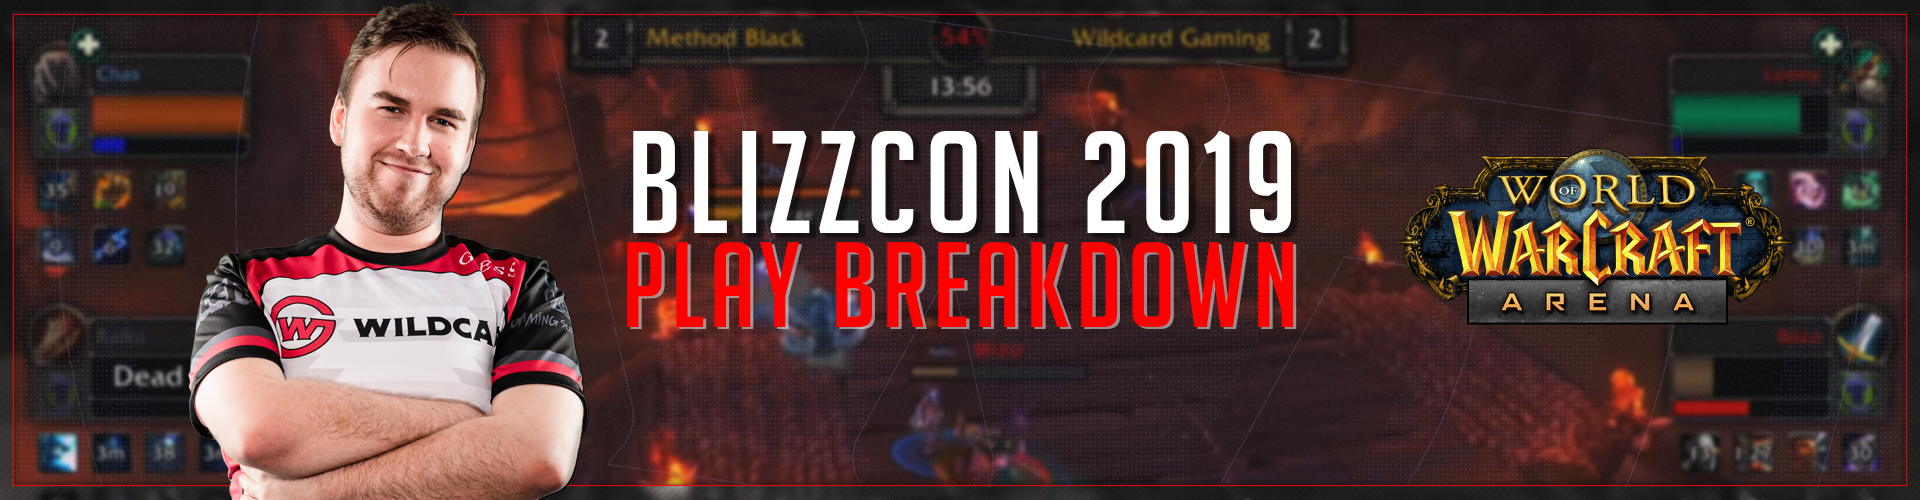 Blizzcon 2019: Blizo Play Breakdown